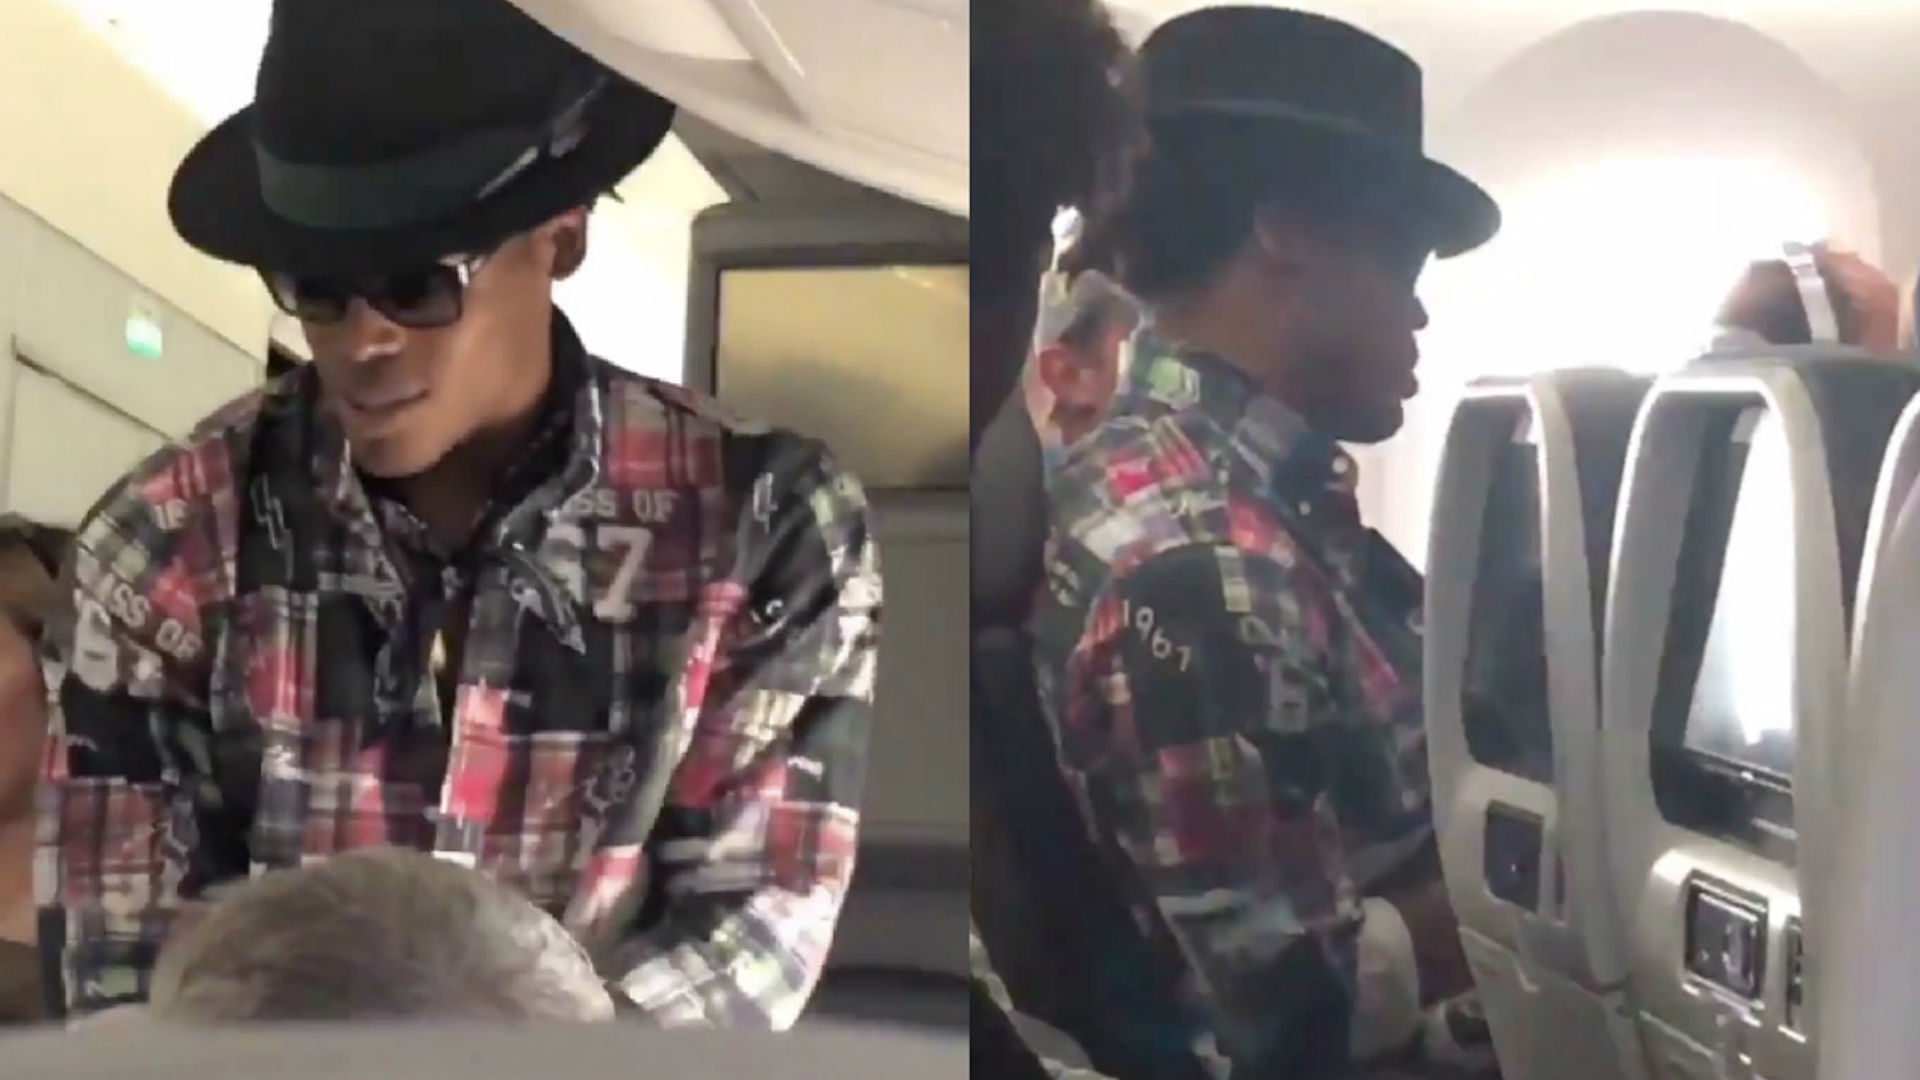 Cam Newton offers man $1,500 to change airplane seats, man says no